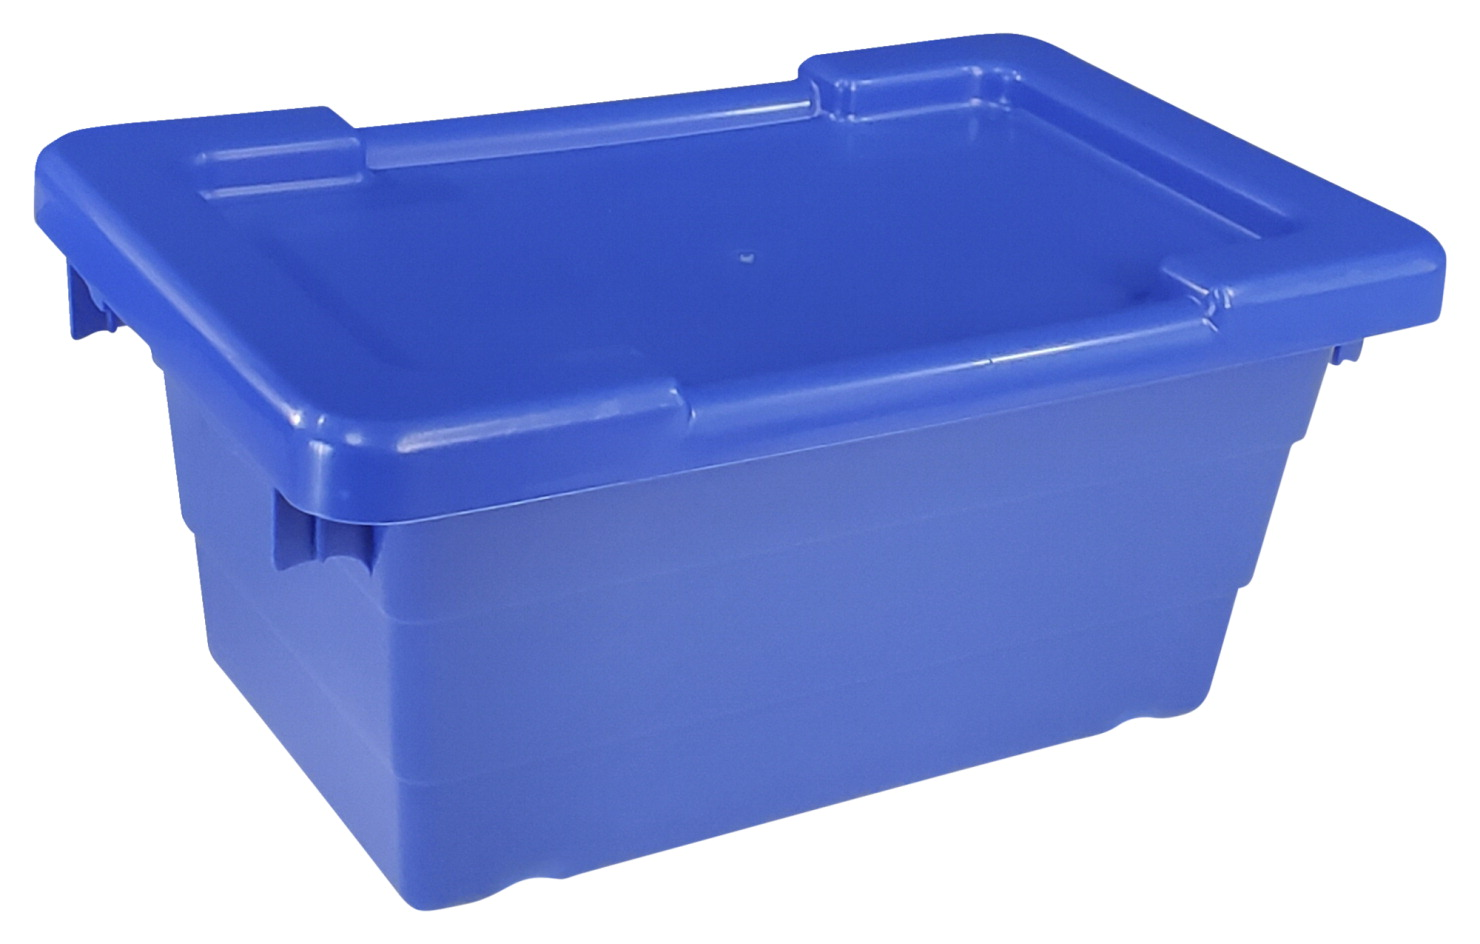 Shirley K's Cross Stack Tub with Lid, 17-1/4 x 11 x 8 Inches, Blue, Pack of 6